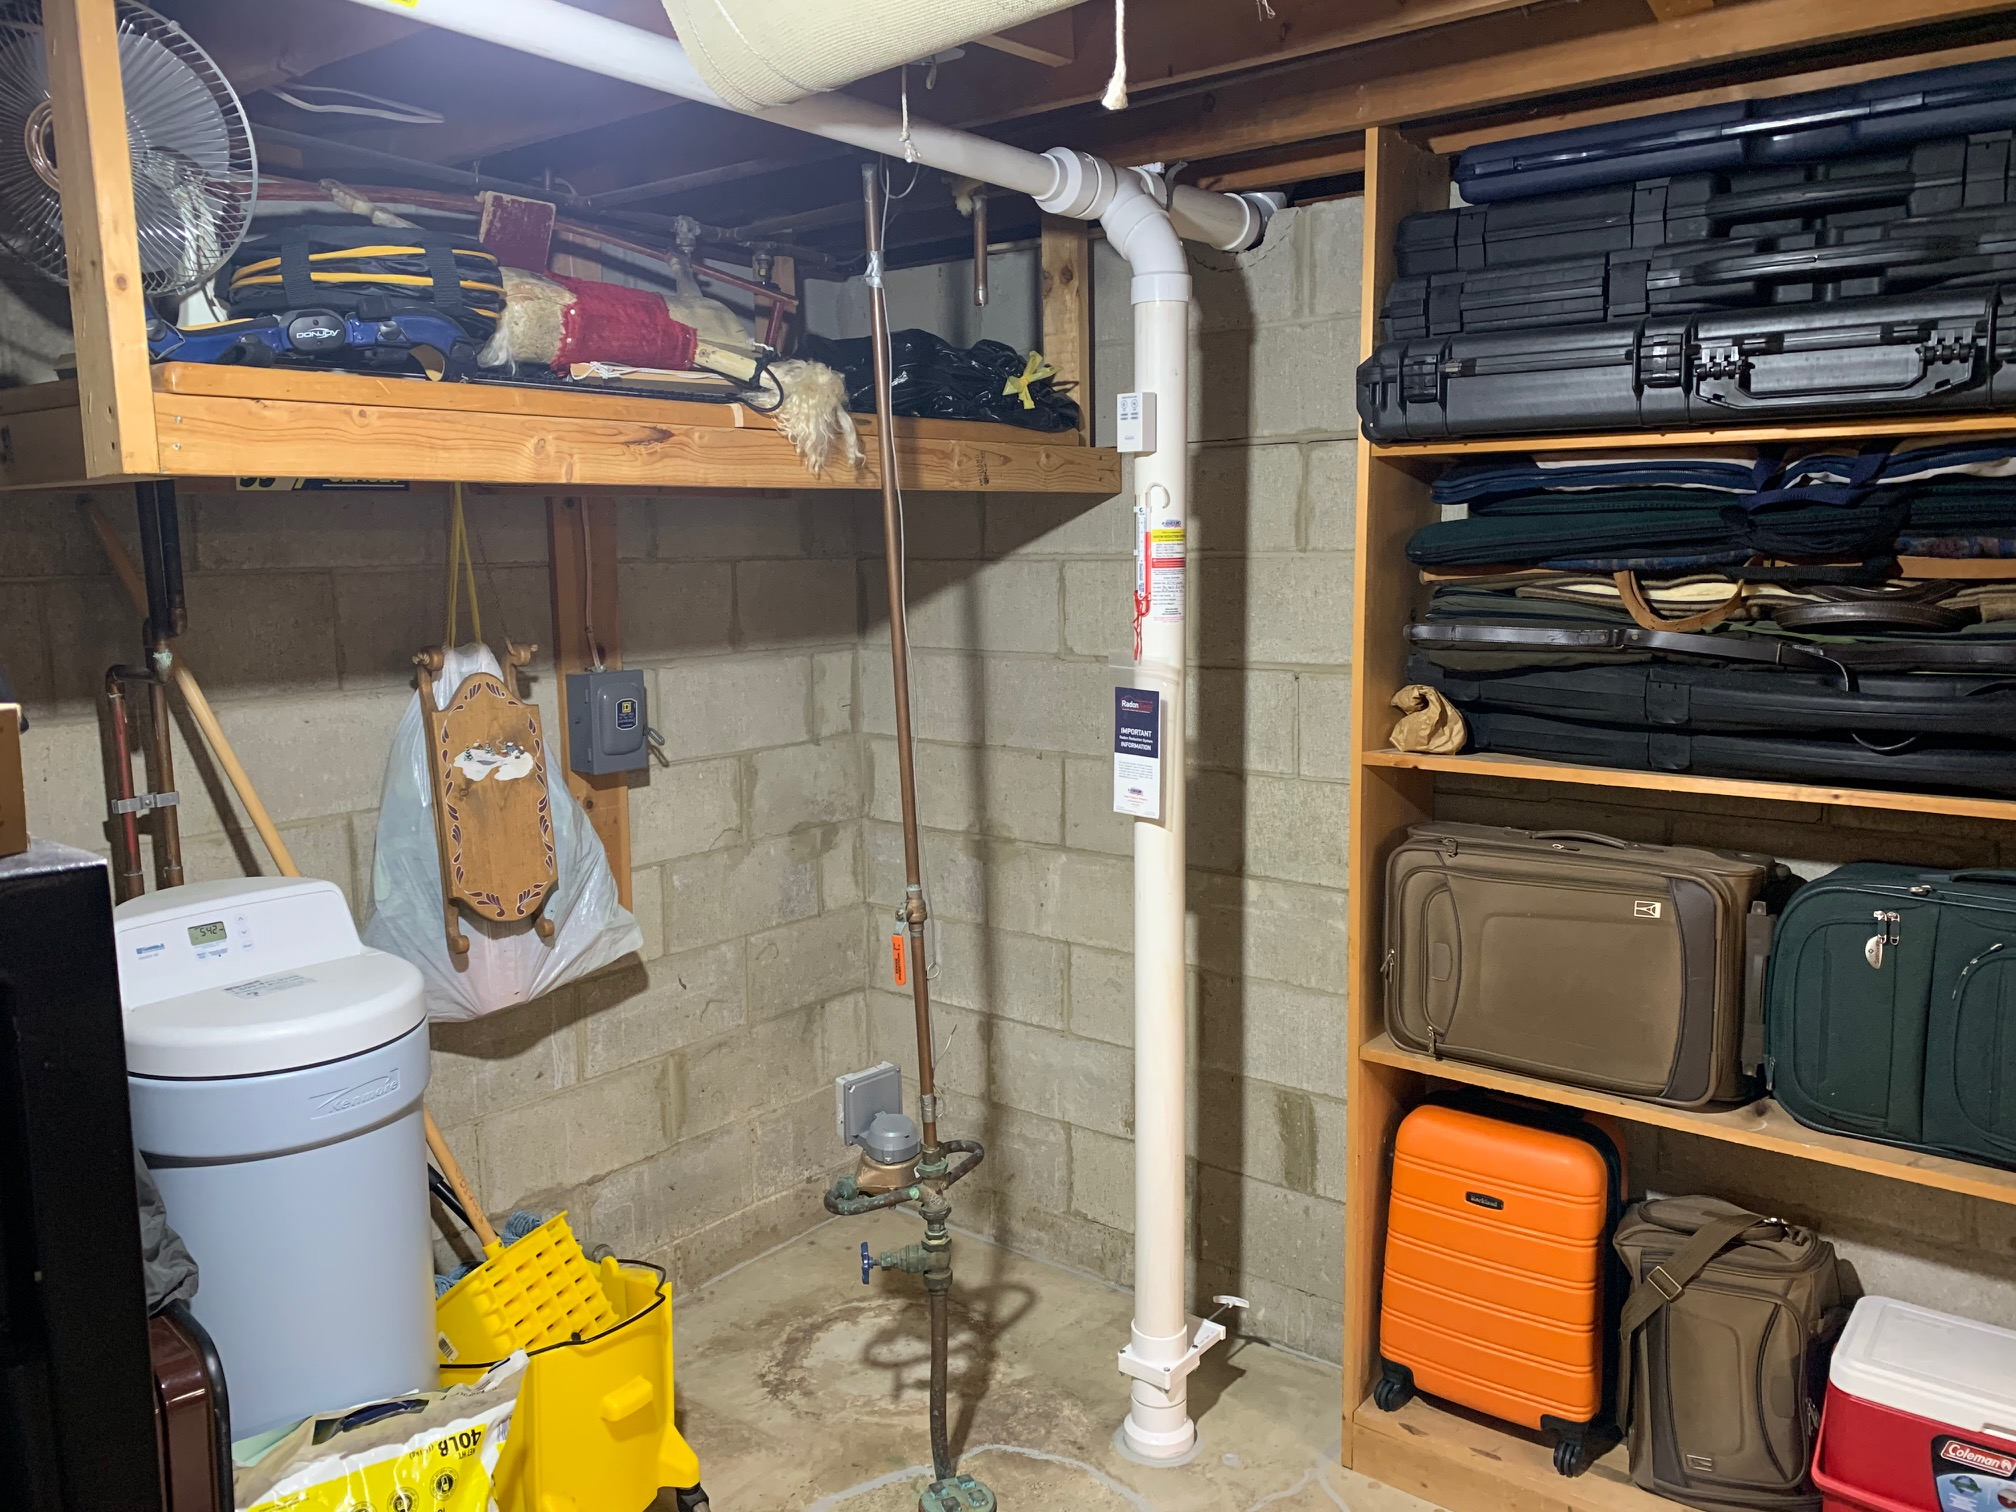 Radon Mitigation System in Basement